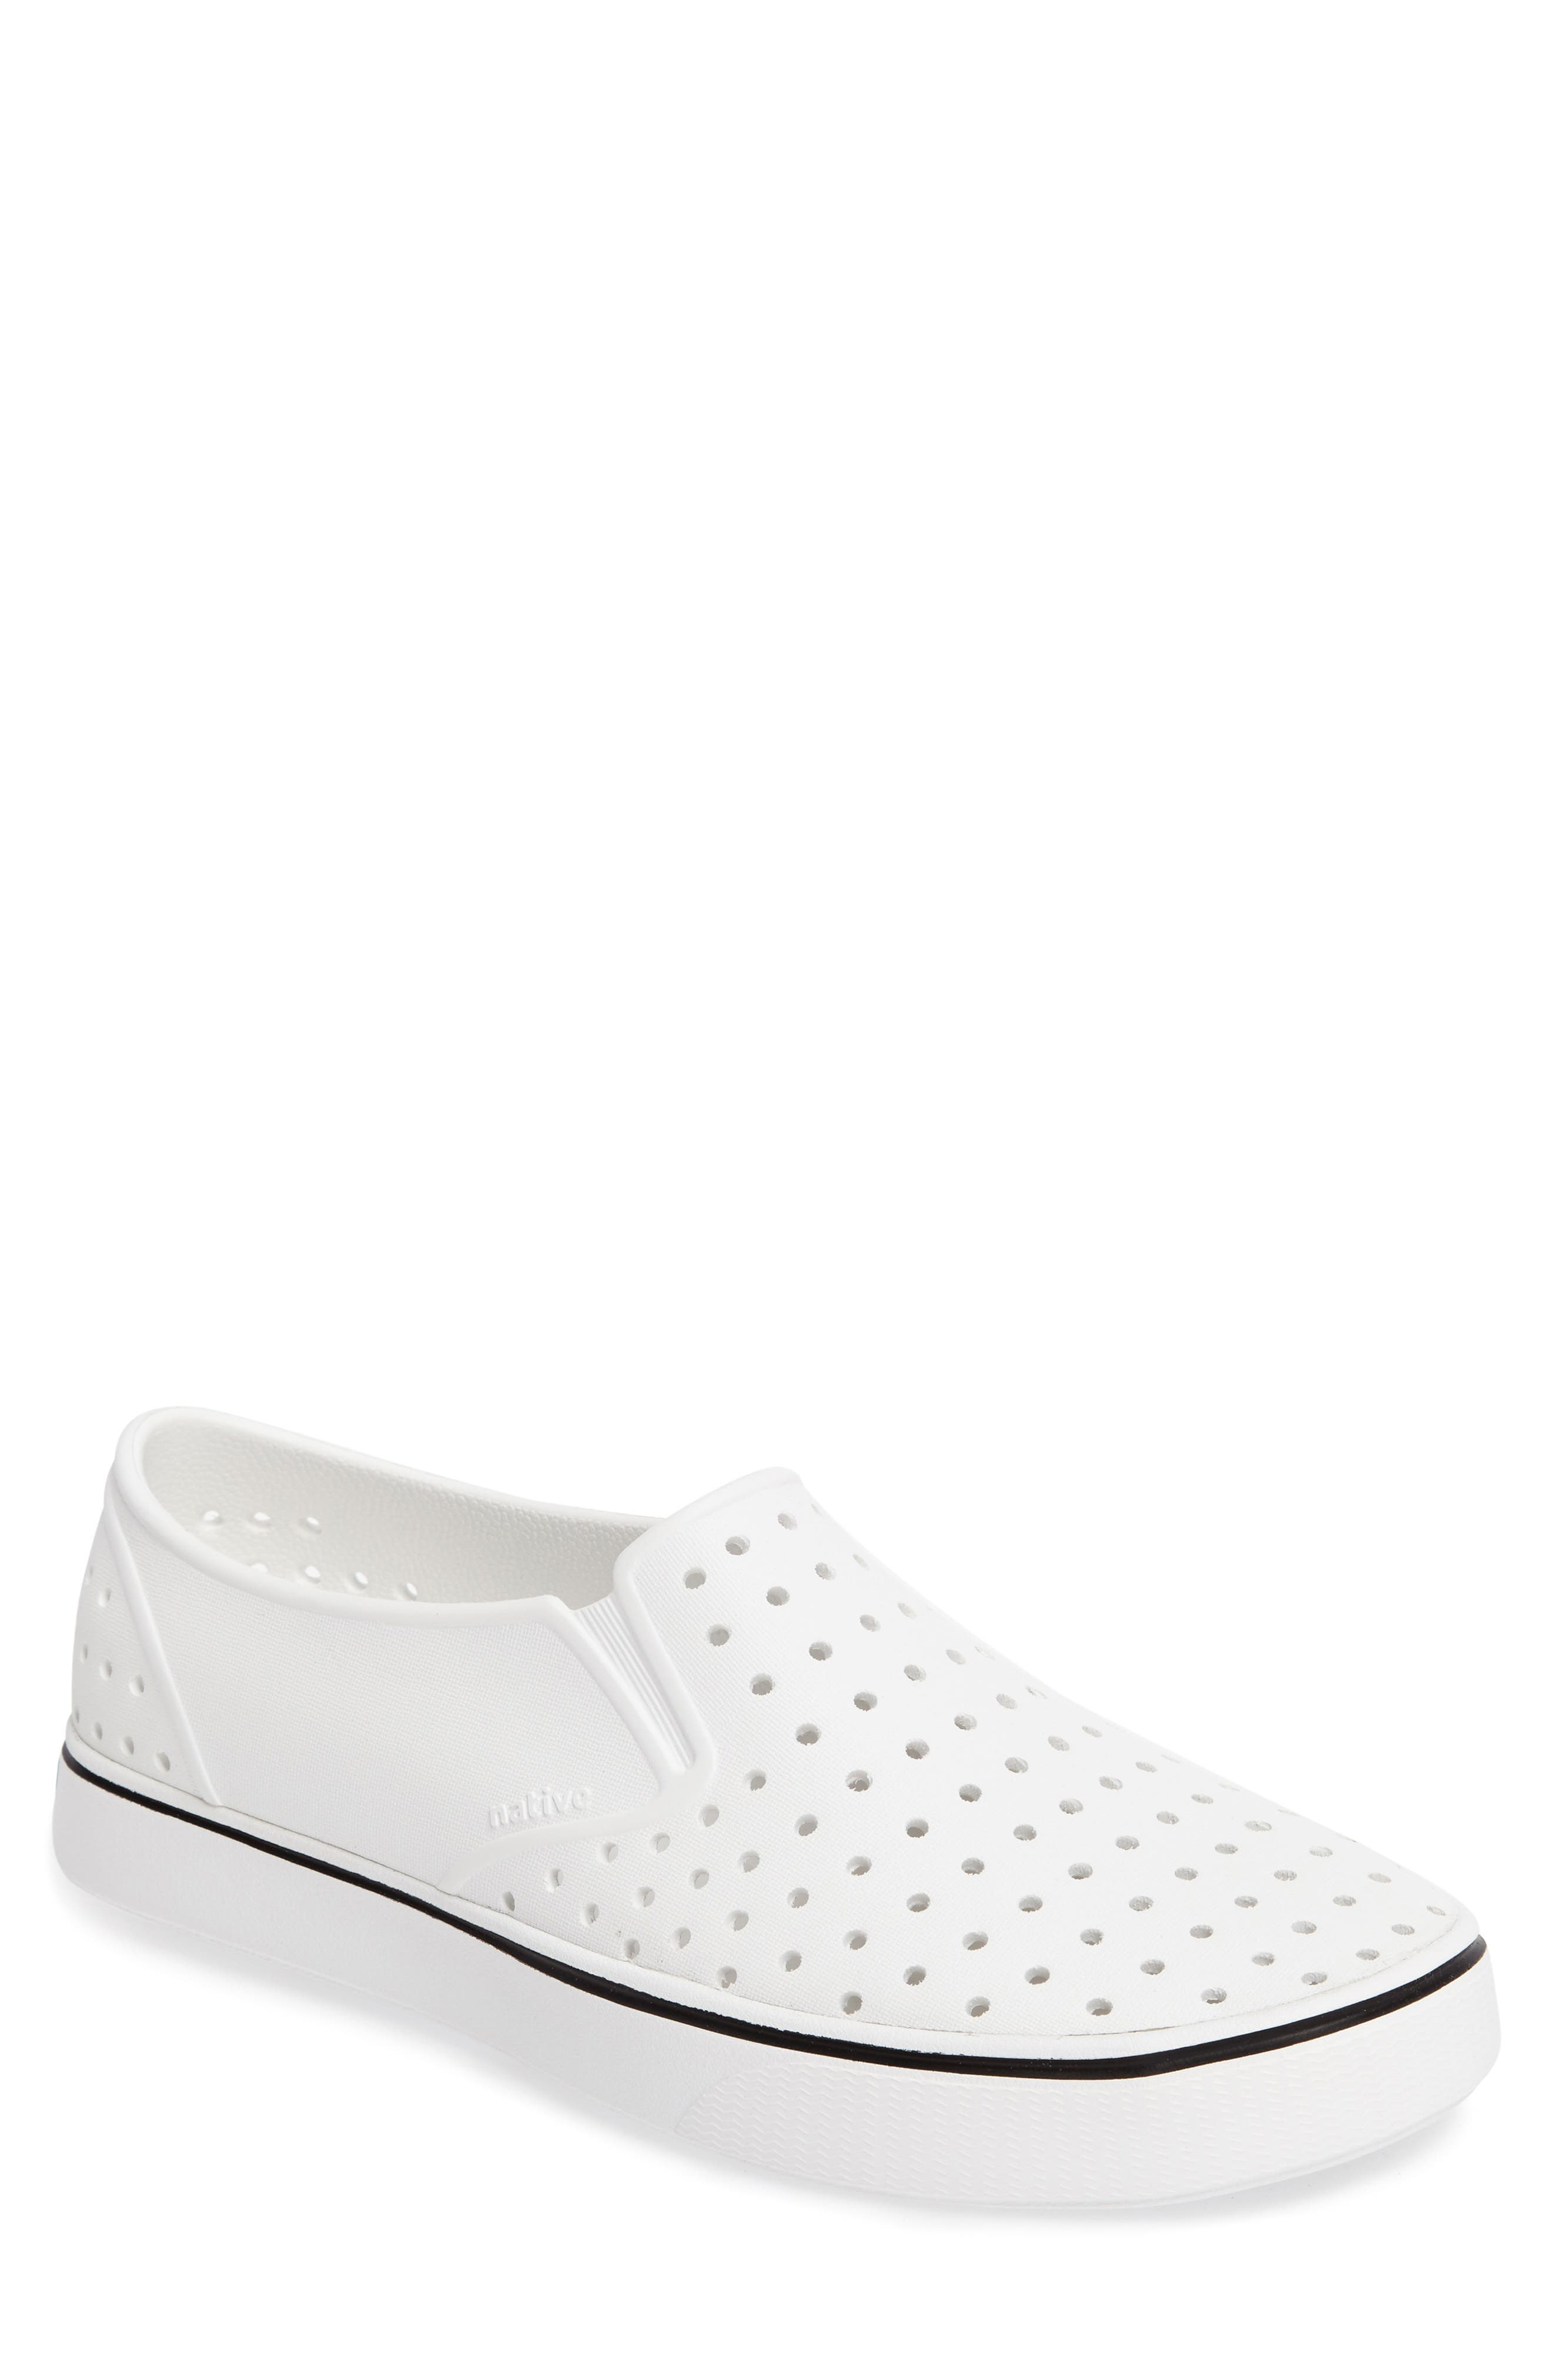 Native Shoes Miles Water Friendly Perforated SlipOn Men